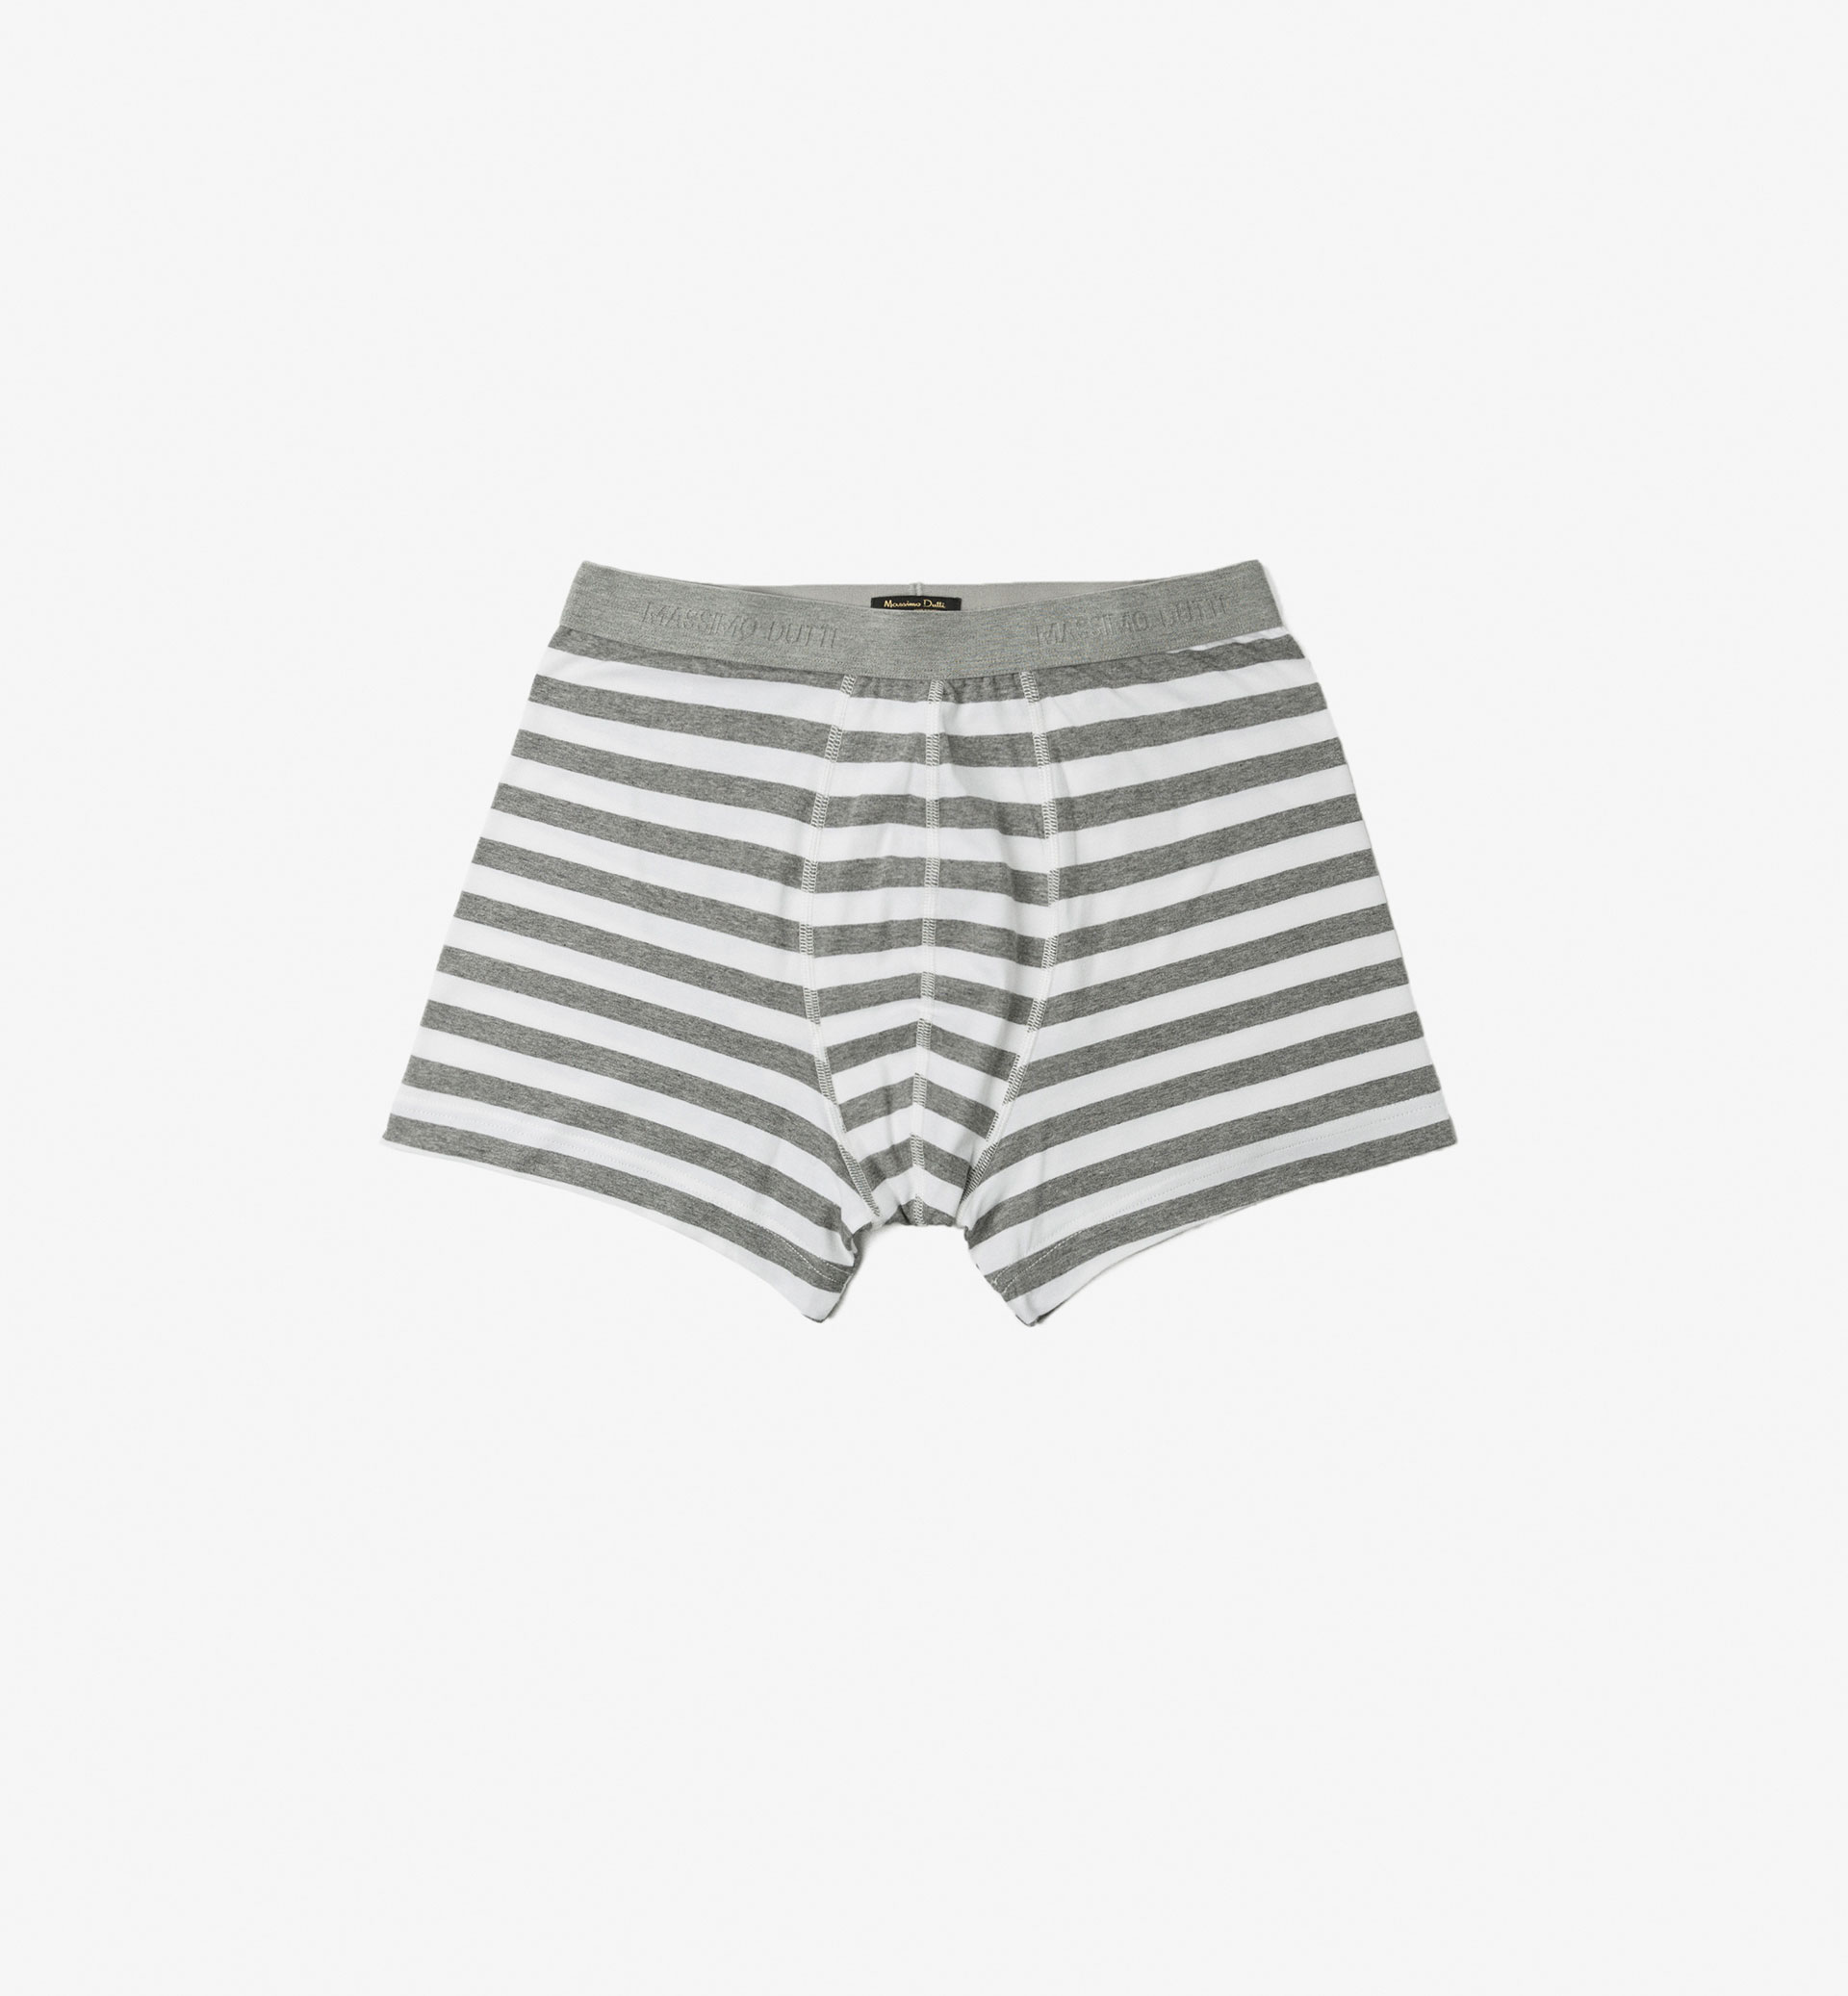 STRIPED CIRCULAR KNIT UNDERPANTS